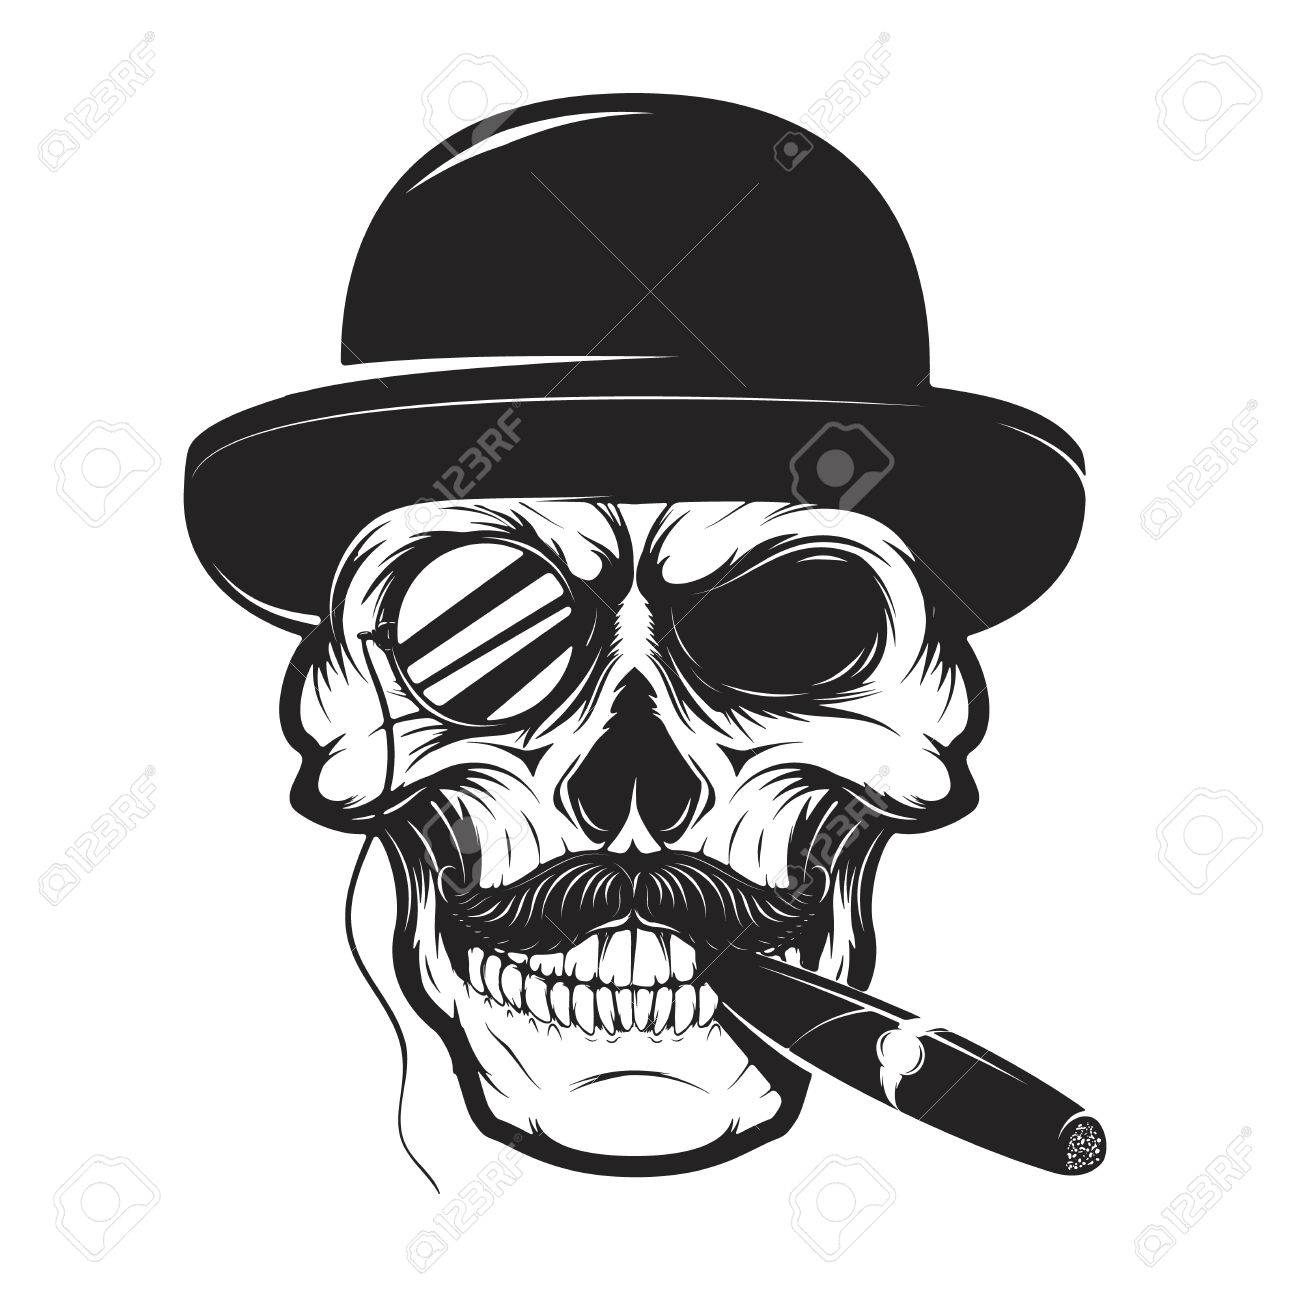 59606481b7eb5 Skull In Hat With Cigar And Monocle. Design Element For Logo ...